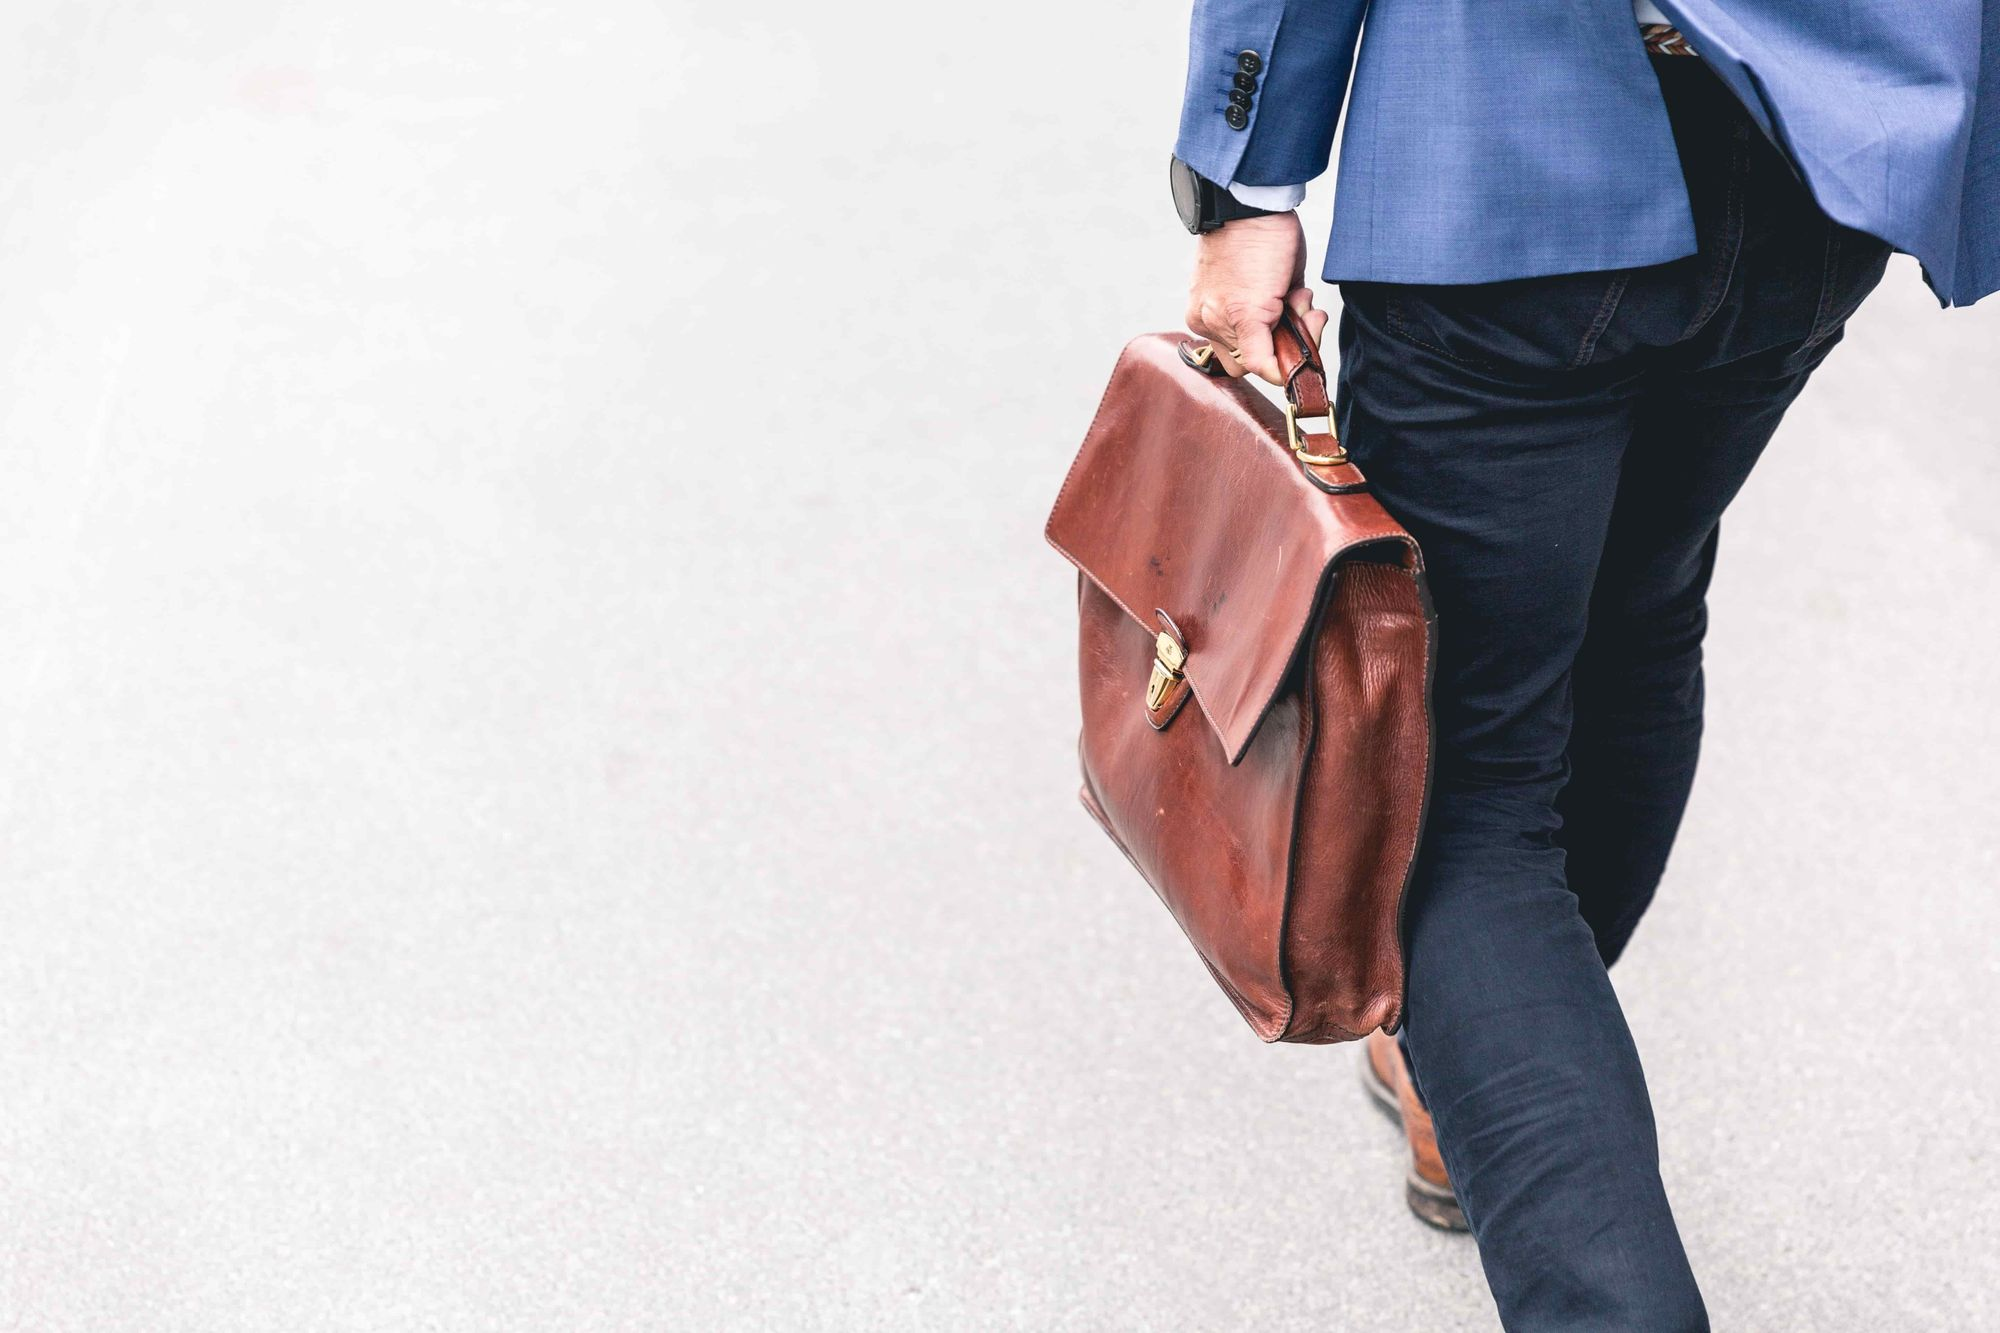 A man walking with a brown suitcase into work.